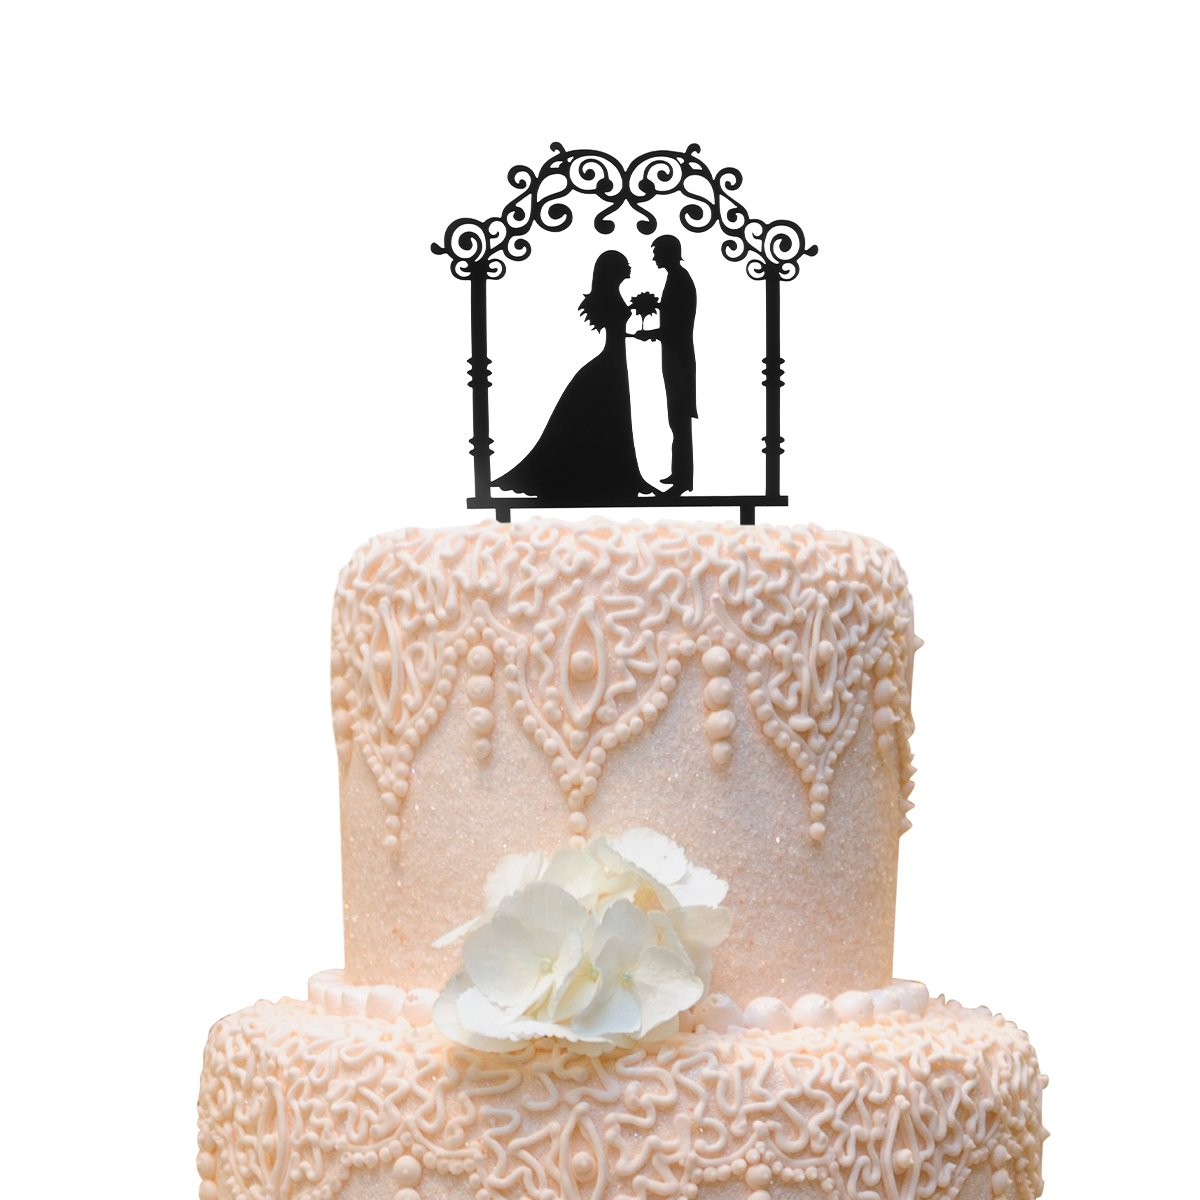 Grinde NO Silhouette Bride and Groom Cake Topper Personalized Wedding Cake Decoration White